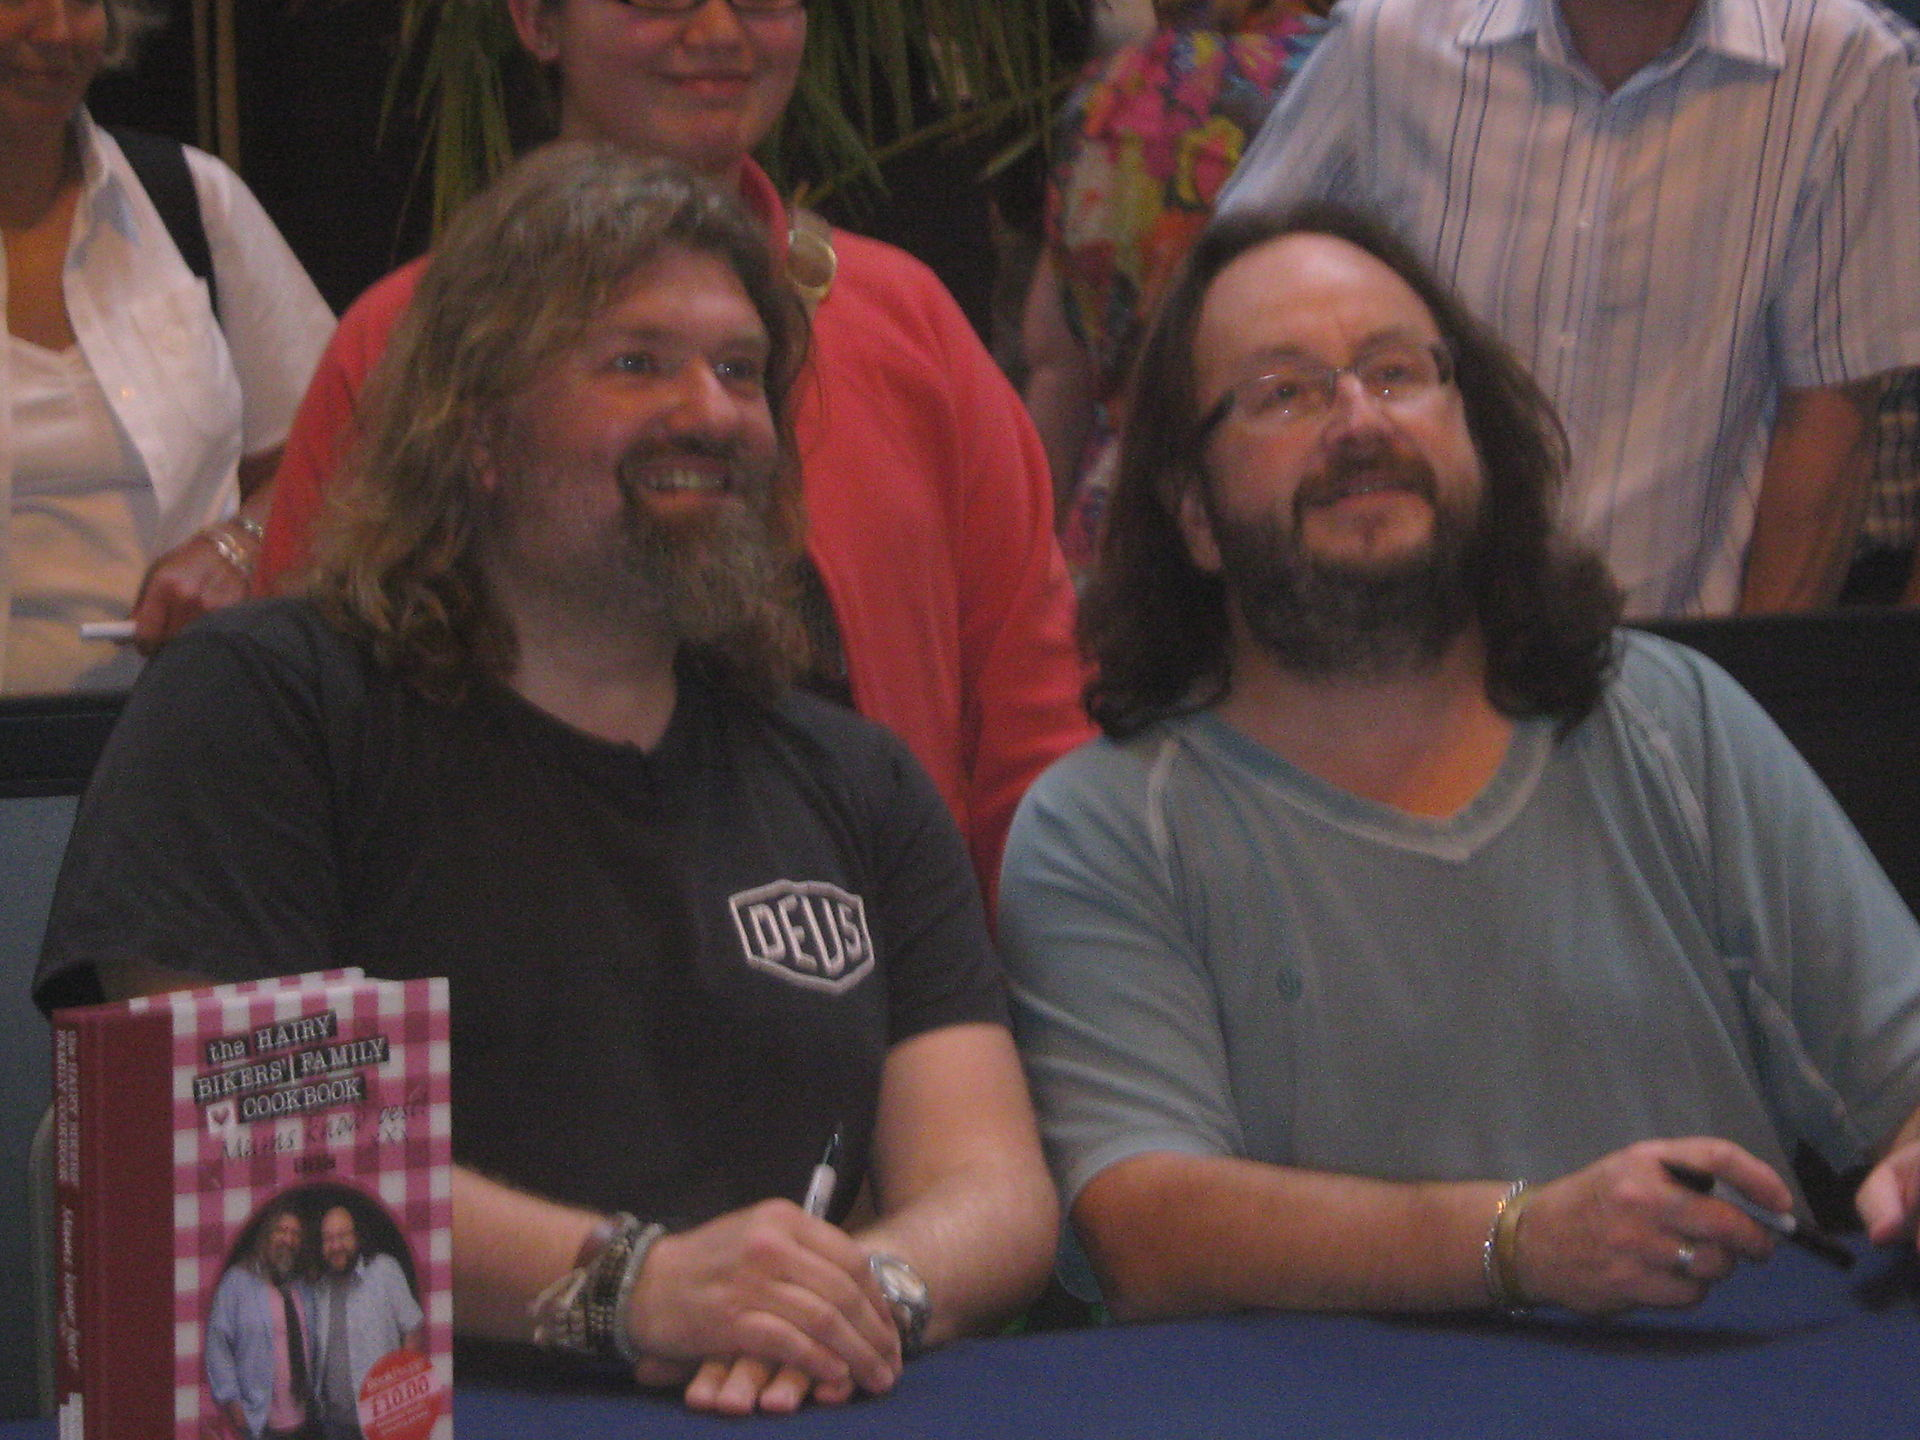 hairy bikers reserve review